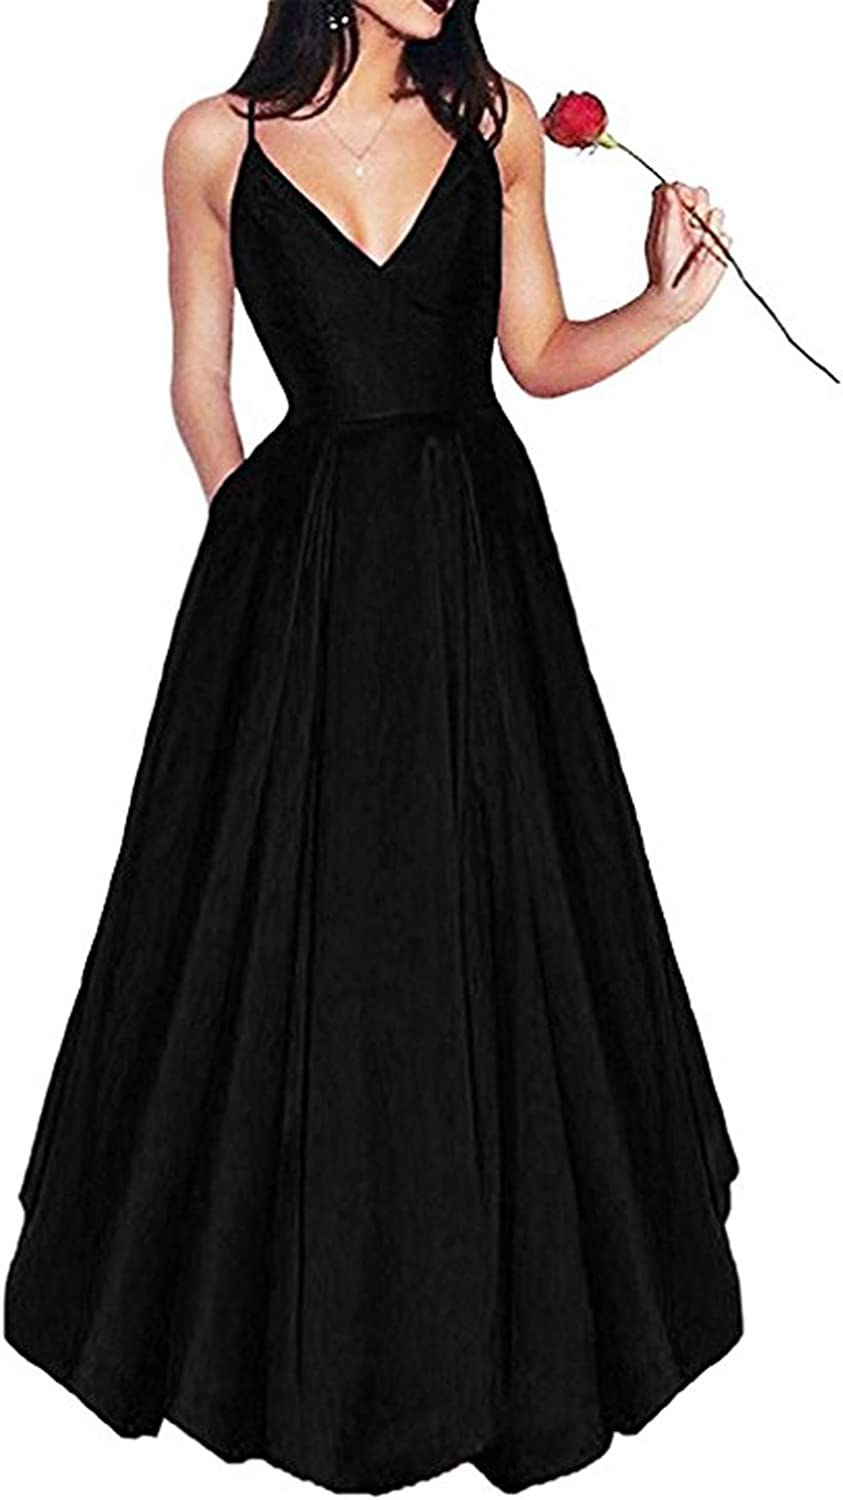 Womens Short Long Off Shoulder Satin Prom Evening Dress with Pockets Beaded